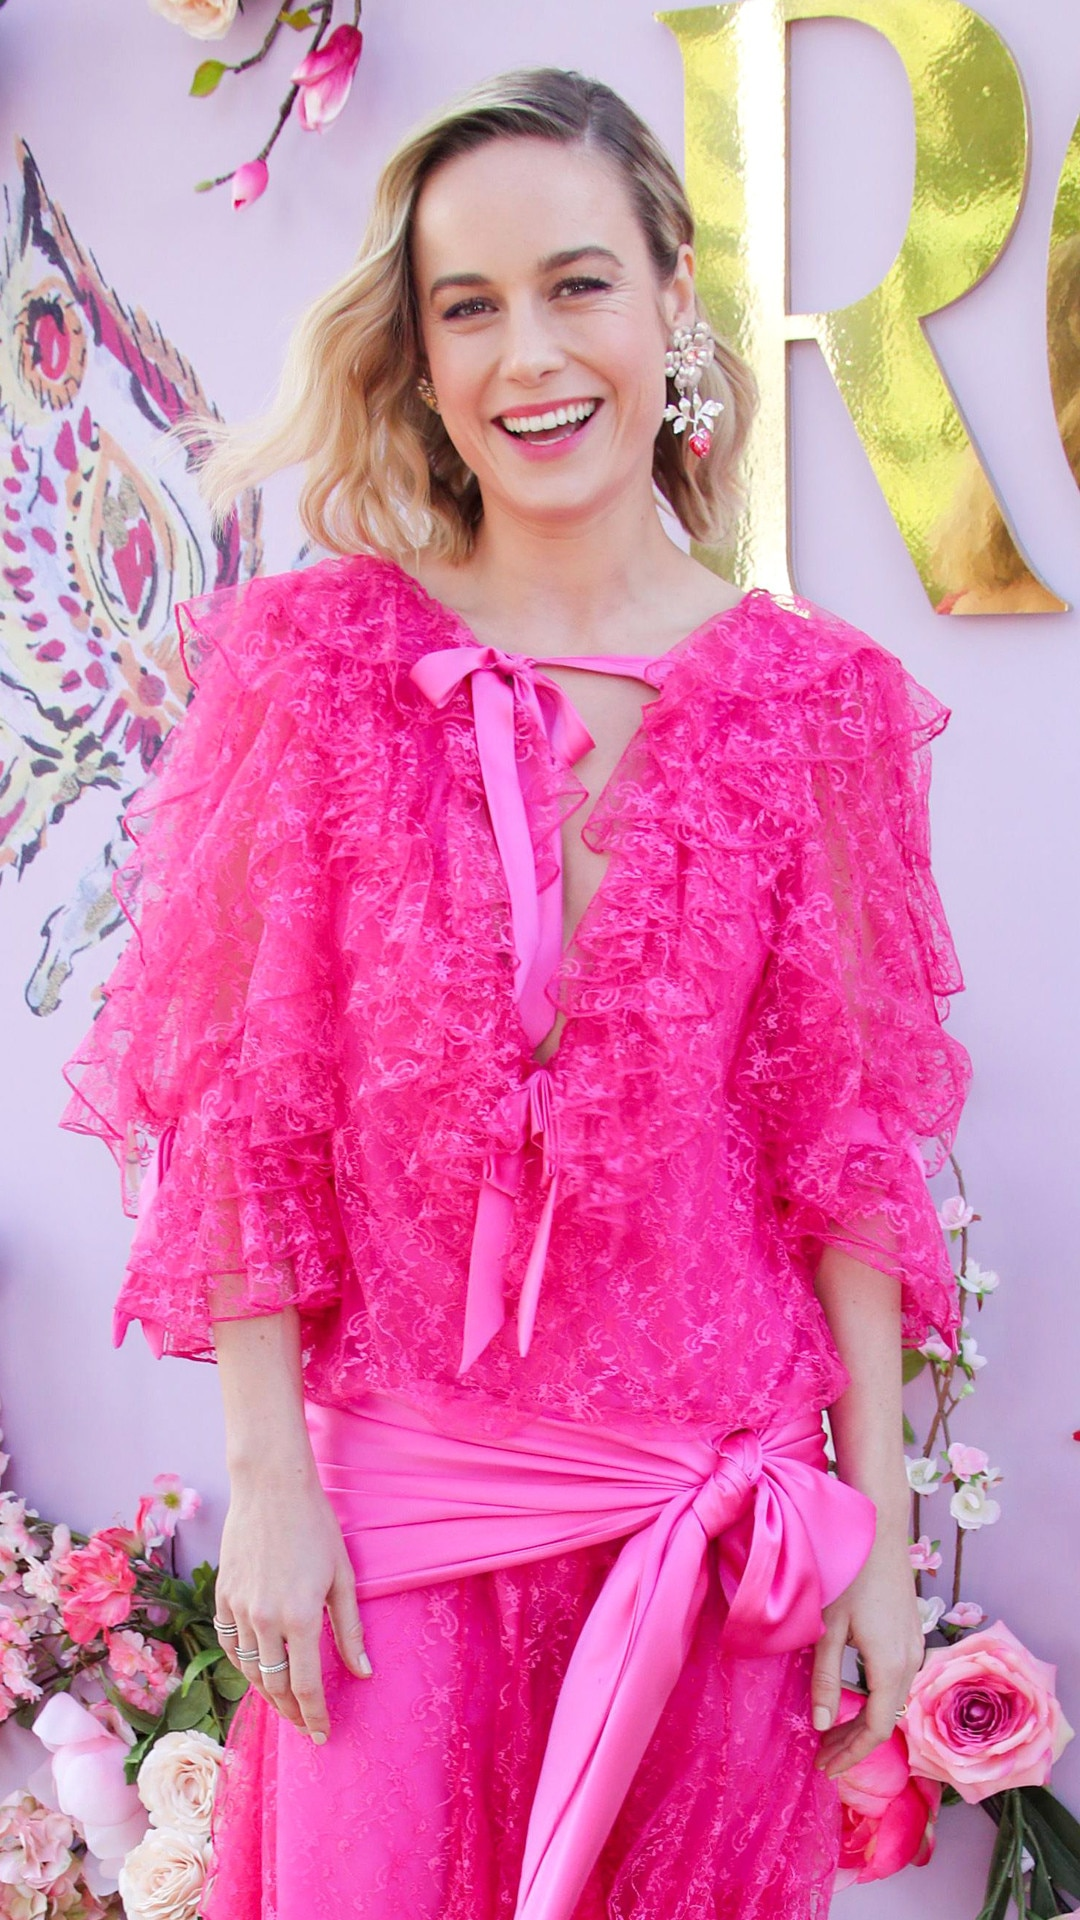 Giving Joy -  While attending the Rodarte show at Los Angeles Fashion Week, Brie looked pretty in pink thanks to her dress.